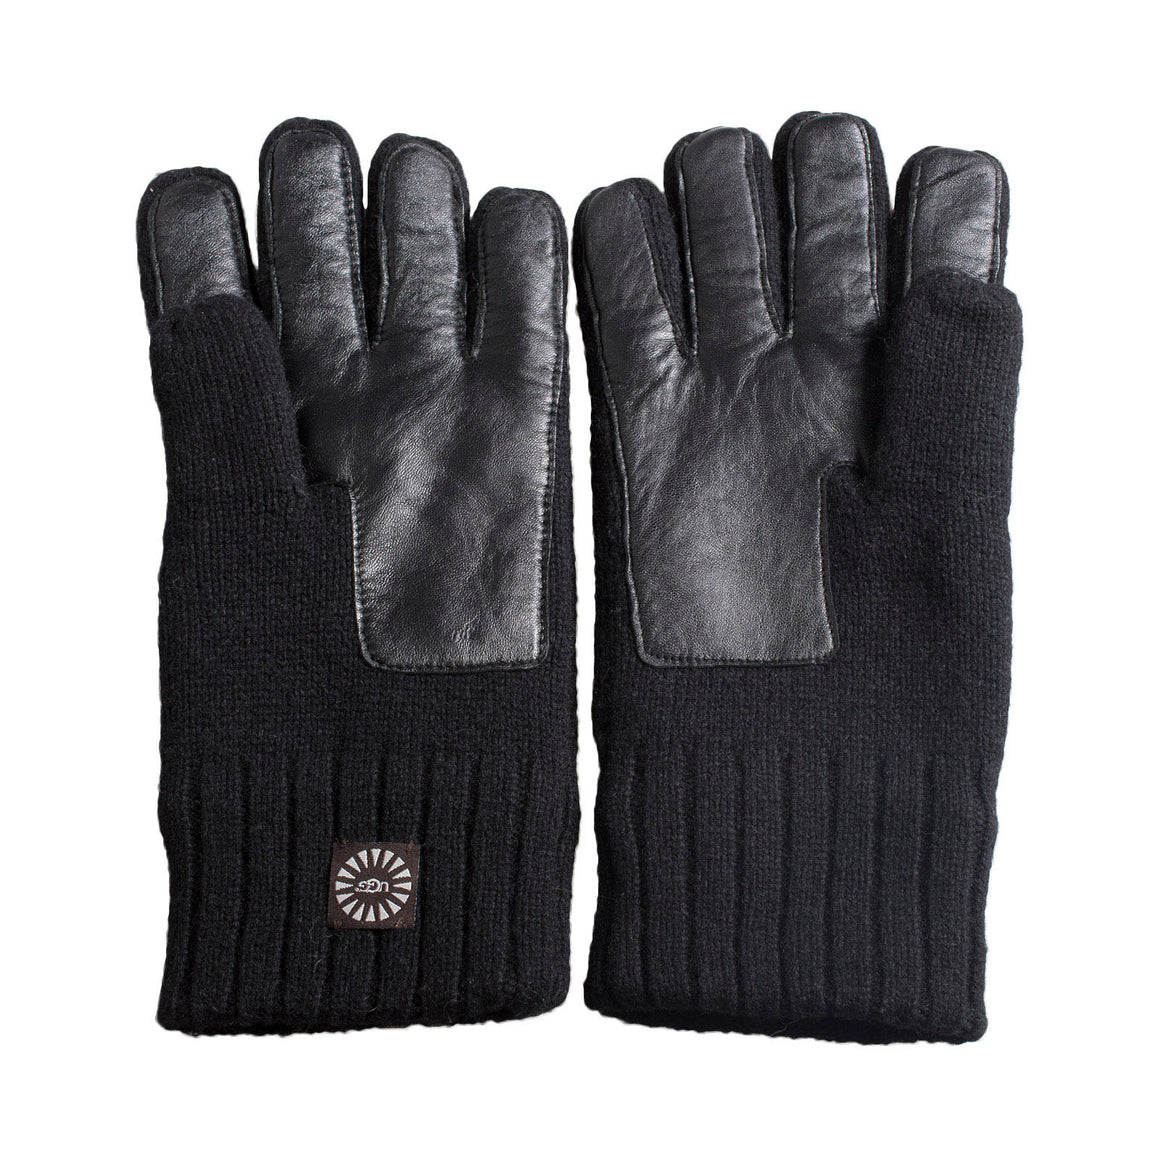 UGG Knit Smart Palm Black Gloves - Men's